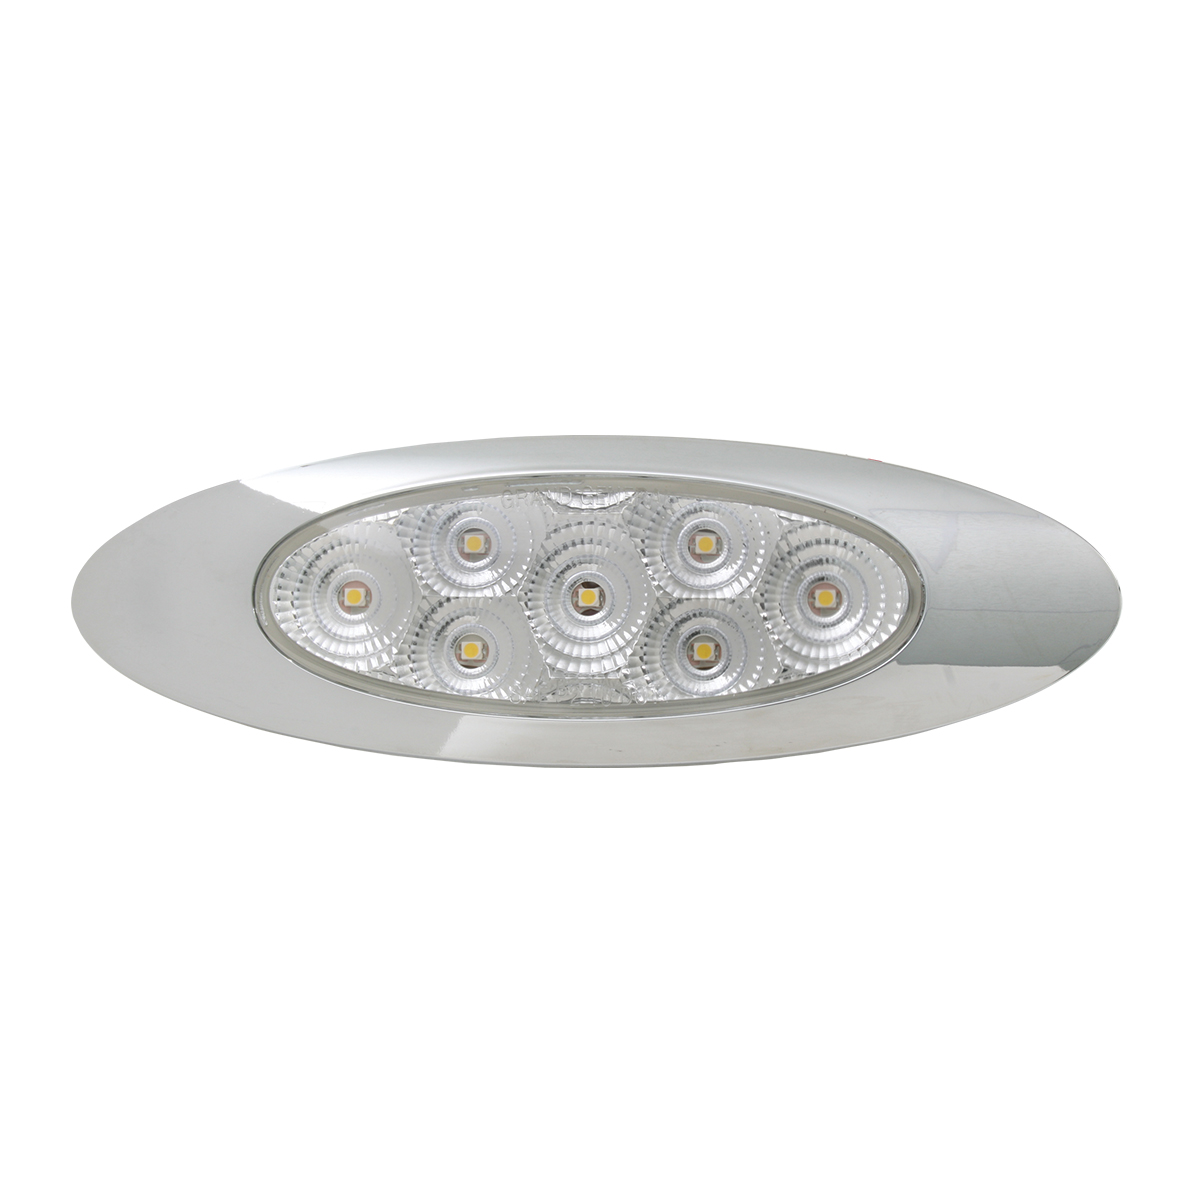 Ultra Thin Y2K Spyder LED Light in Clear Lens